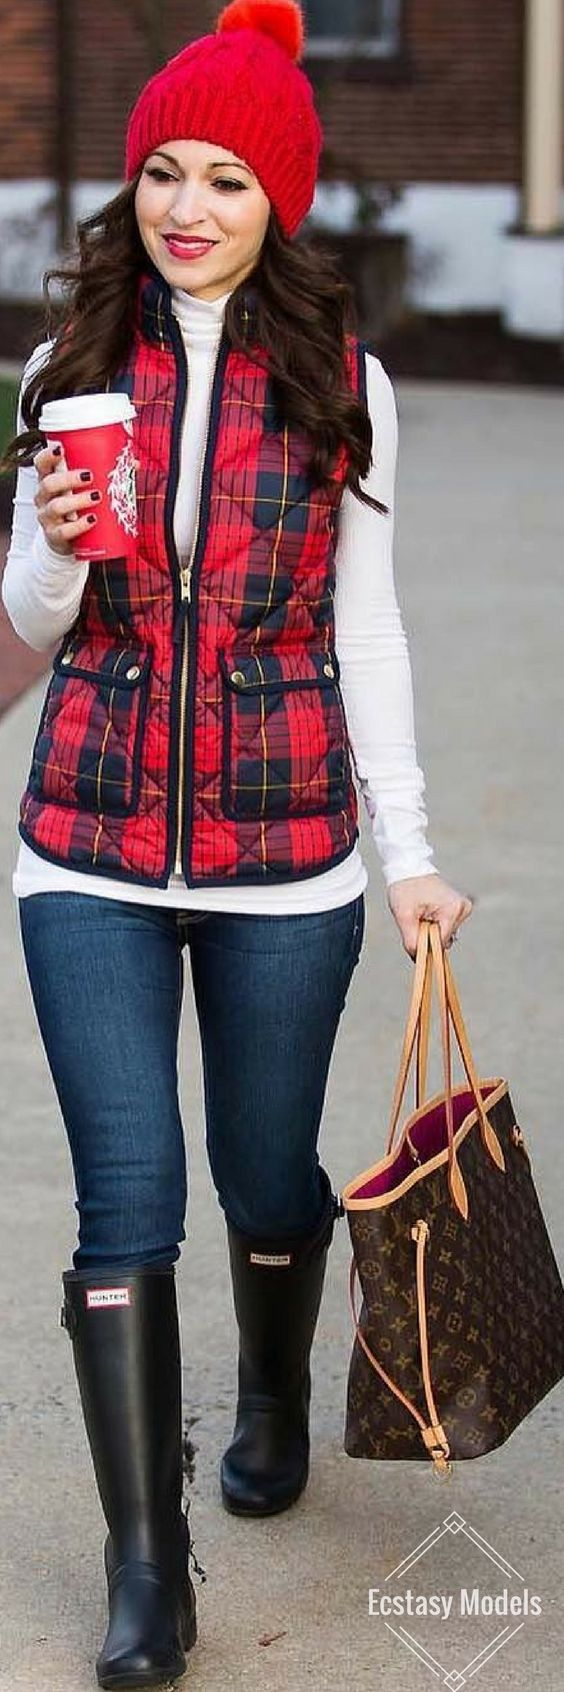 Puffy Vest // Vest by J. Crew , Boots By Hunter // Fashion Look by Alissa Weikel